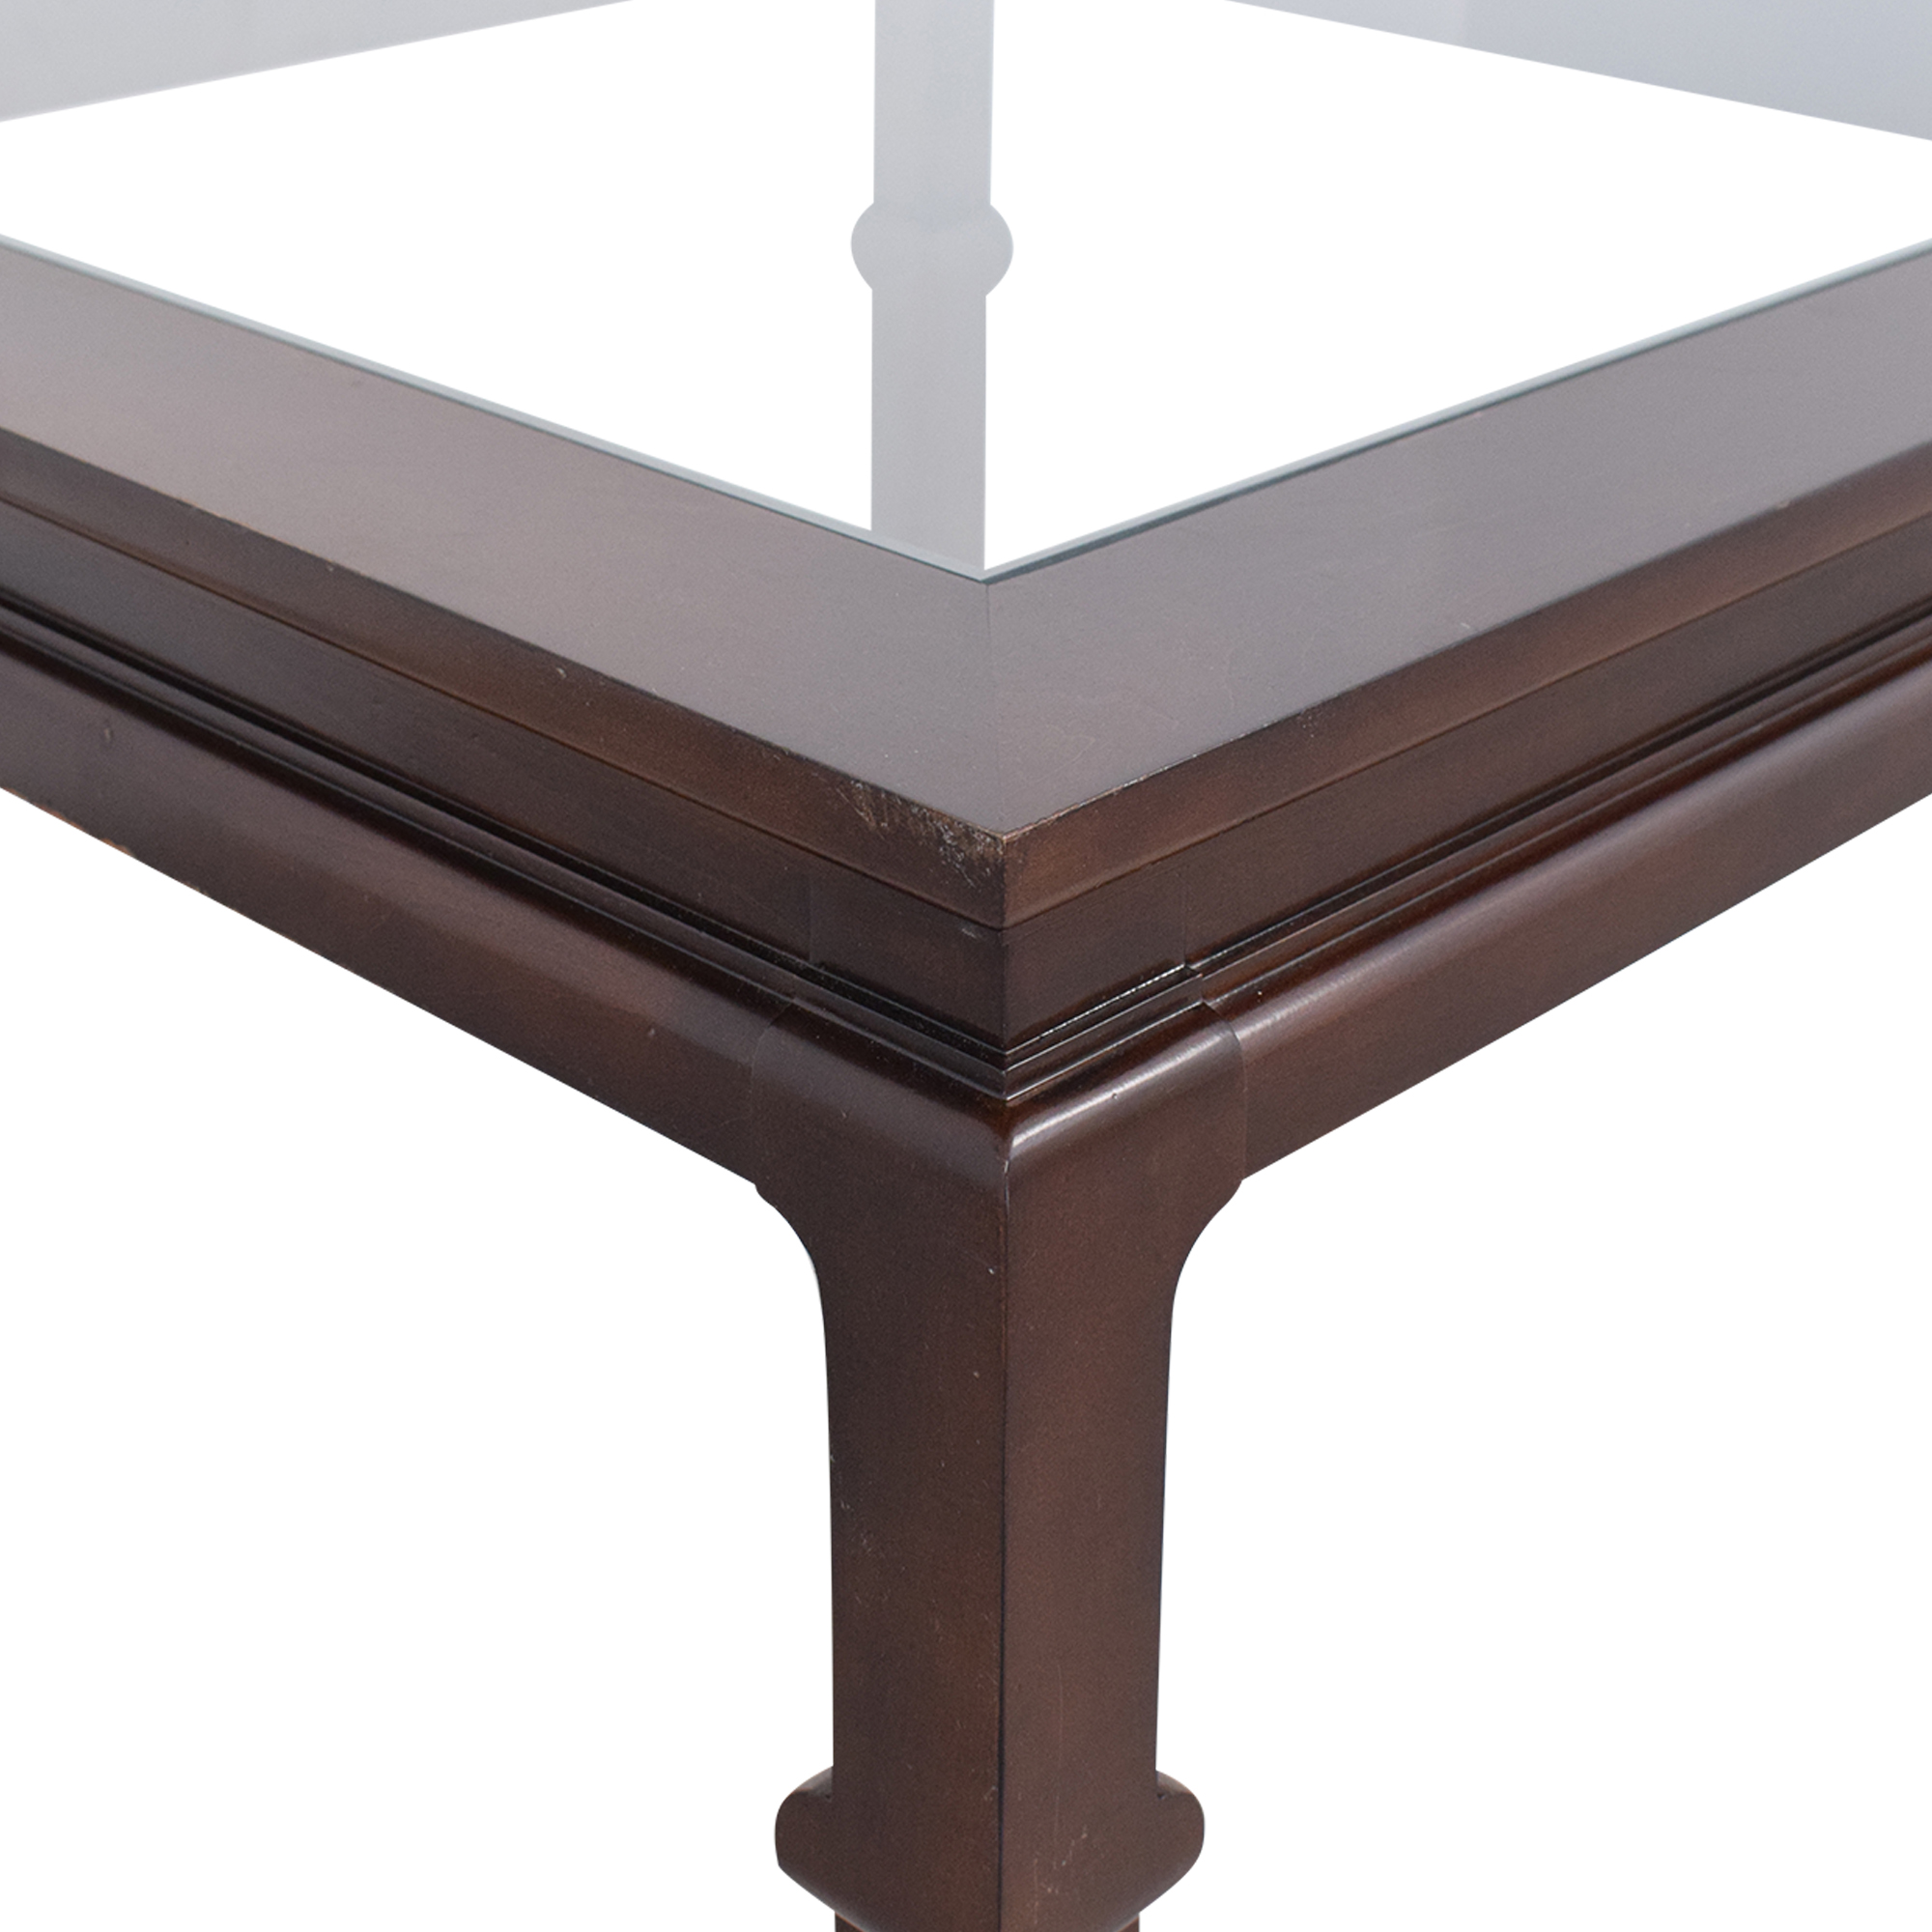 Hickory Chair Hickory Chair Ceylon Made to Measure Dining Table discount